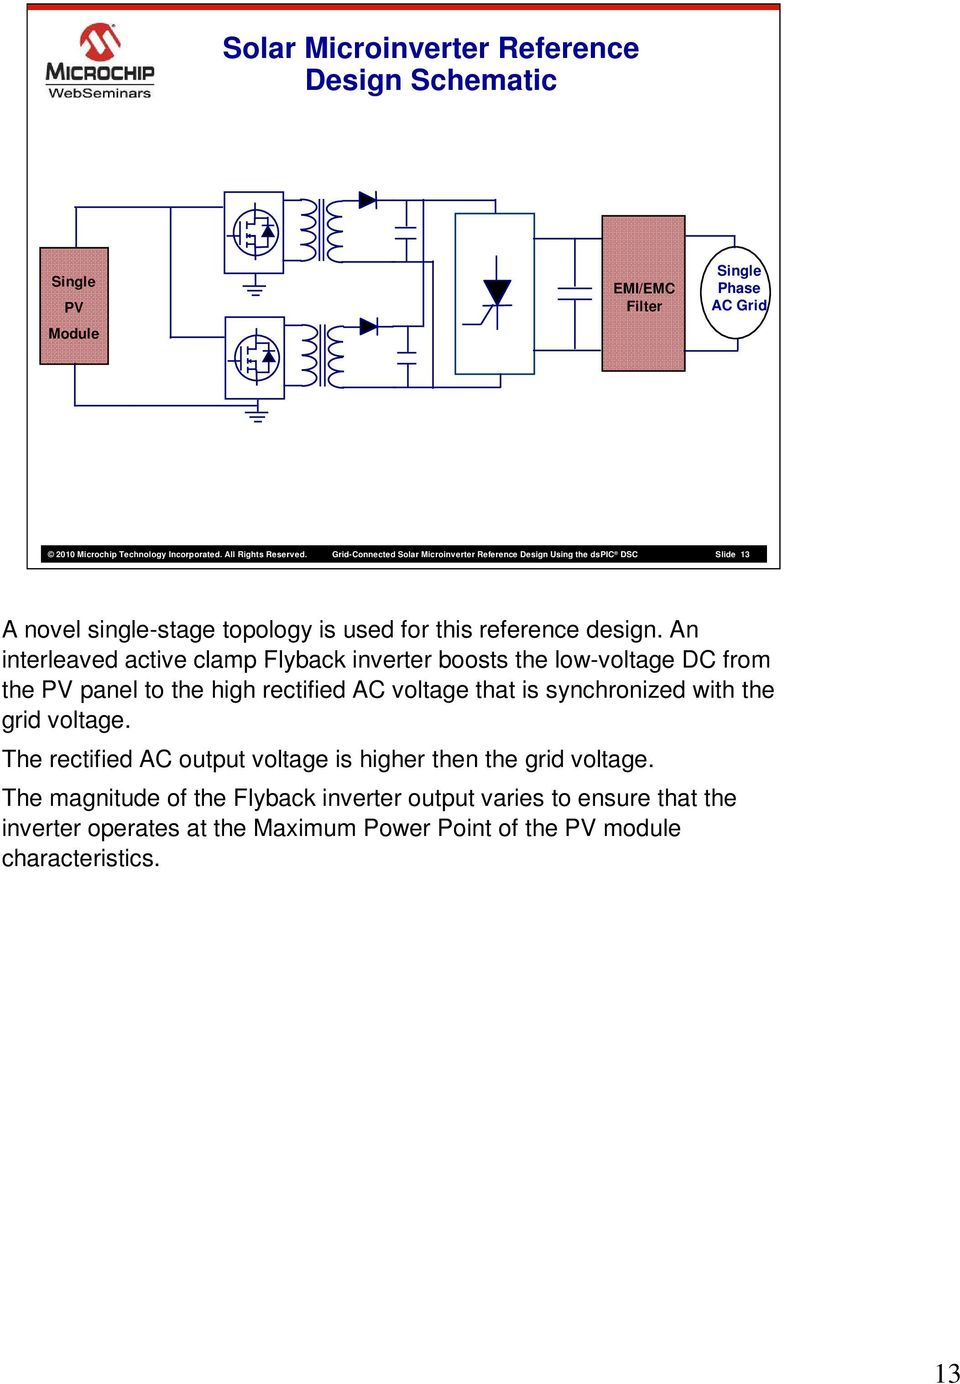 Grid Connected Solar Microinverter Reference Design Pdf 100w Inverter Circuit Schematic Wiring Diagram An Interleaved Active Clamp Flyback Boosts The Low Voltage Dc From Pv Panel